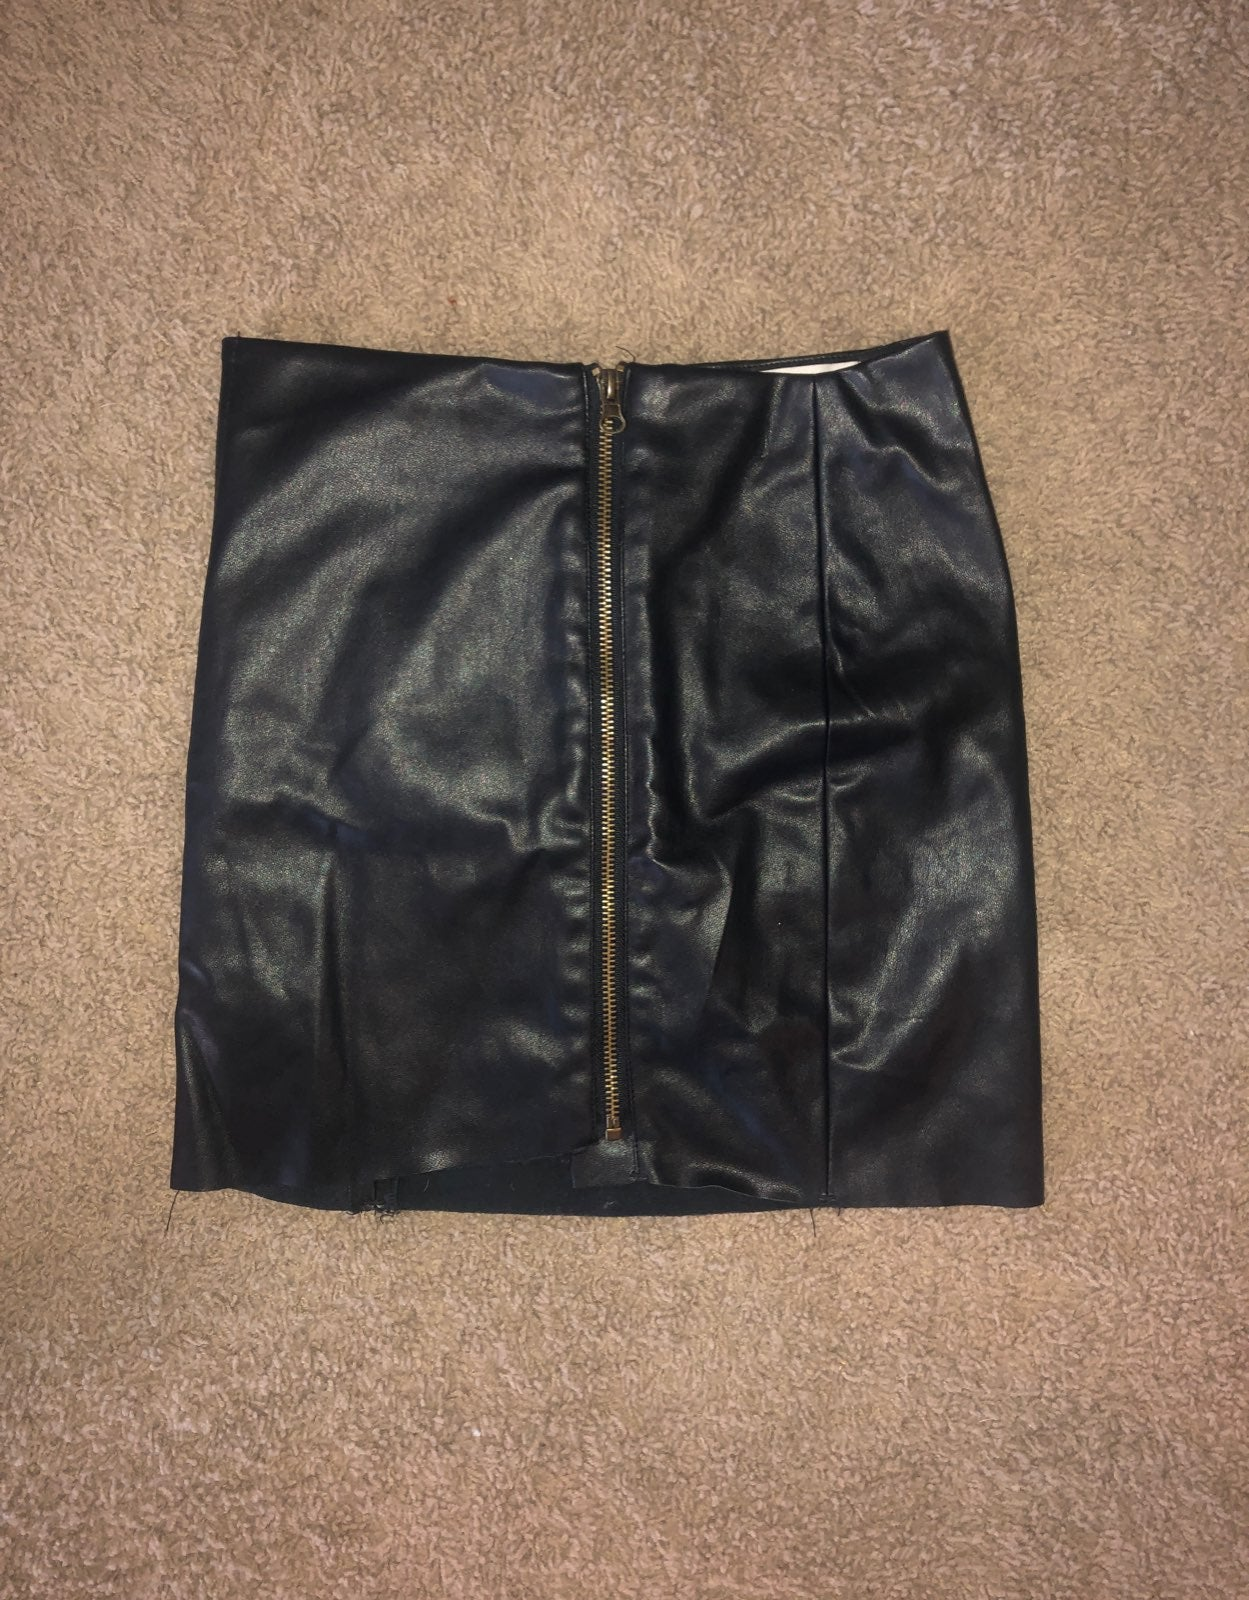 Leather zip up Skirt